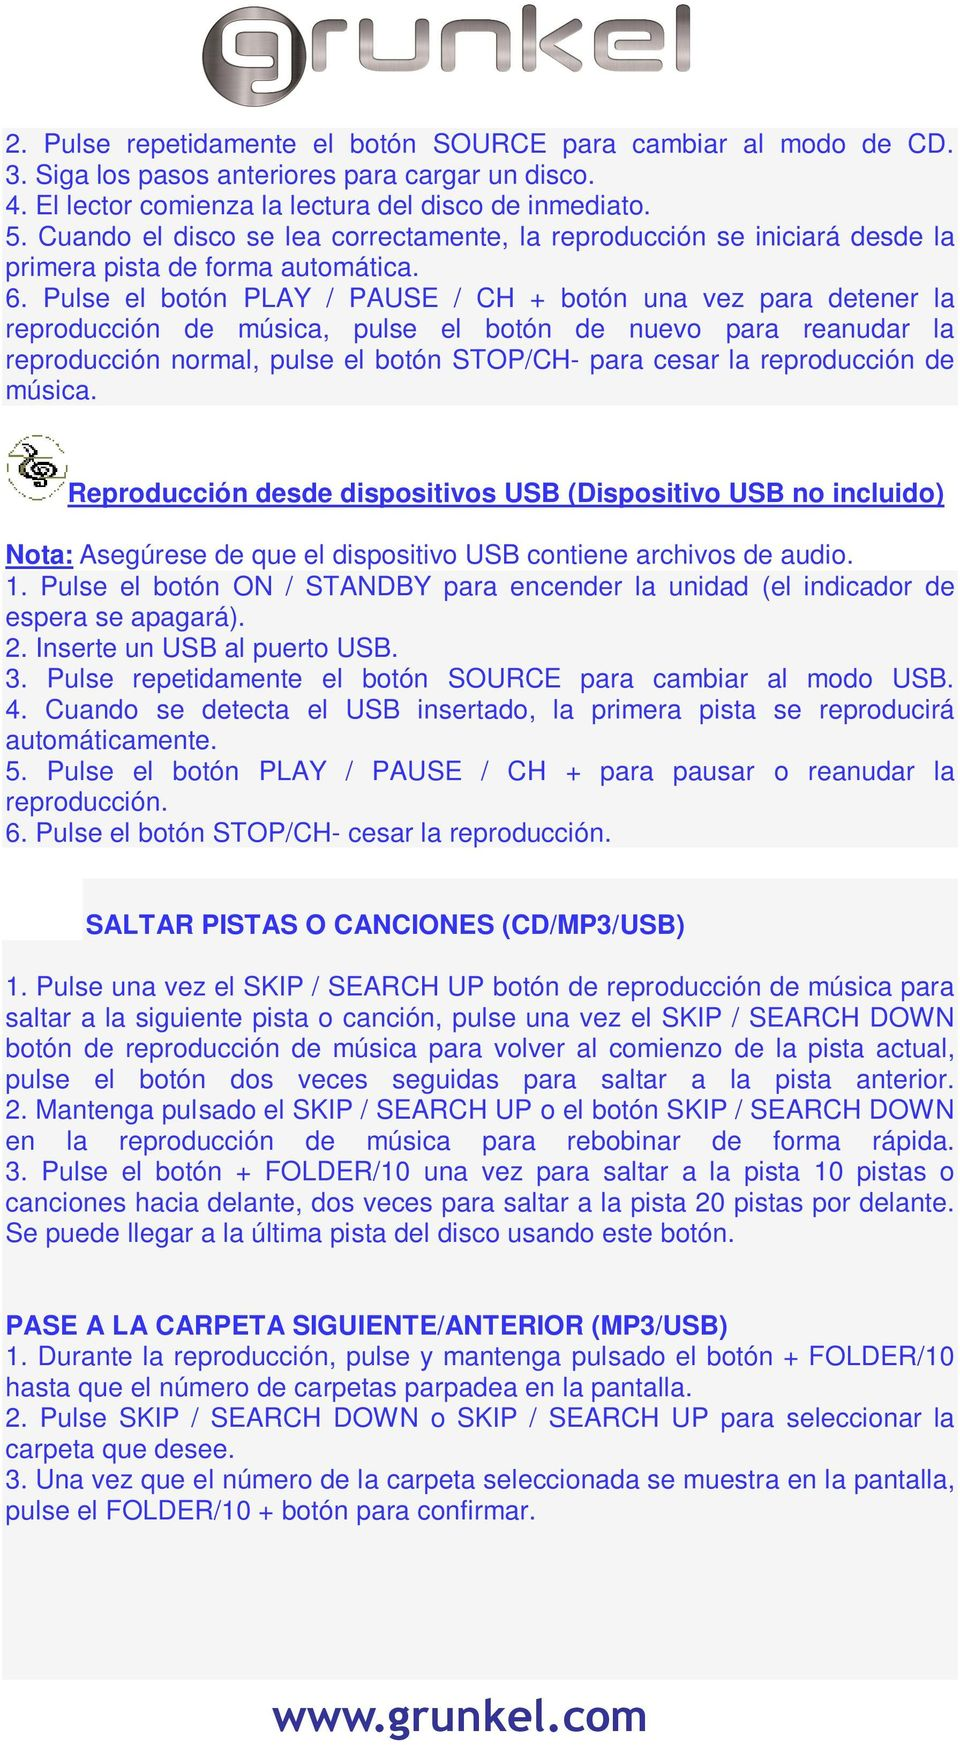 MANUAL DE INTRUCCIONES RADIO CD/MP3 CON LECTOR USB Y RADIO FM - PDF